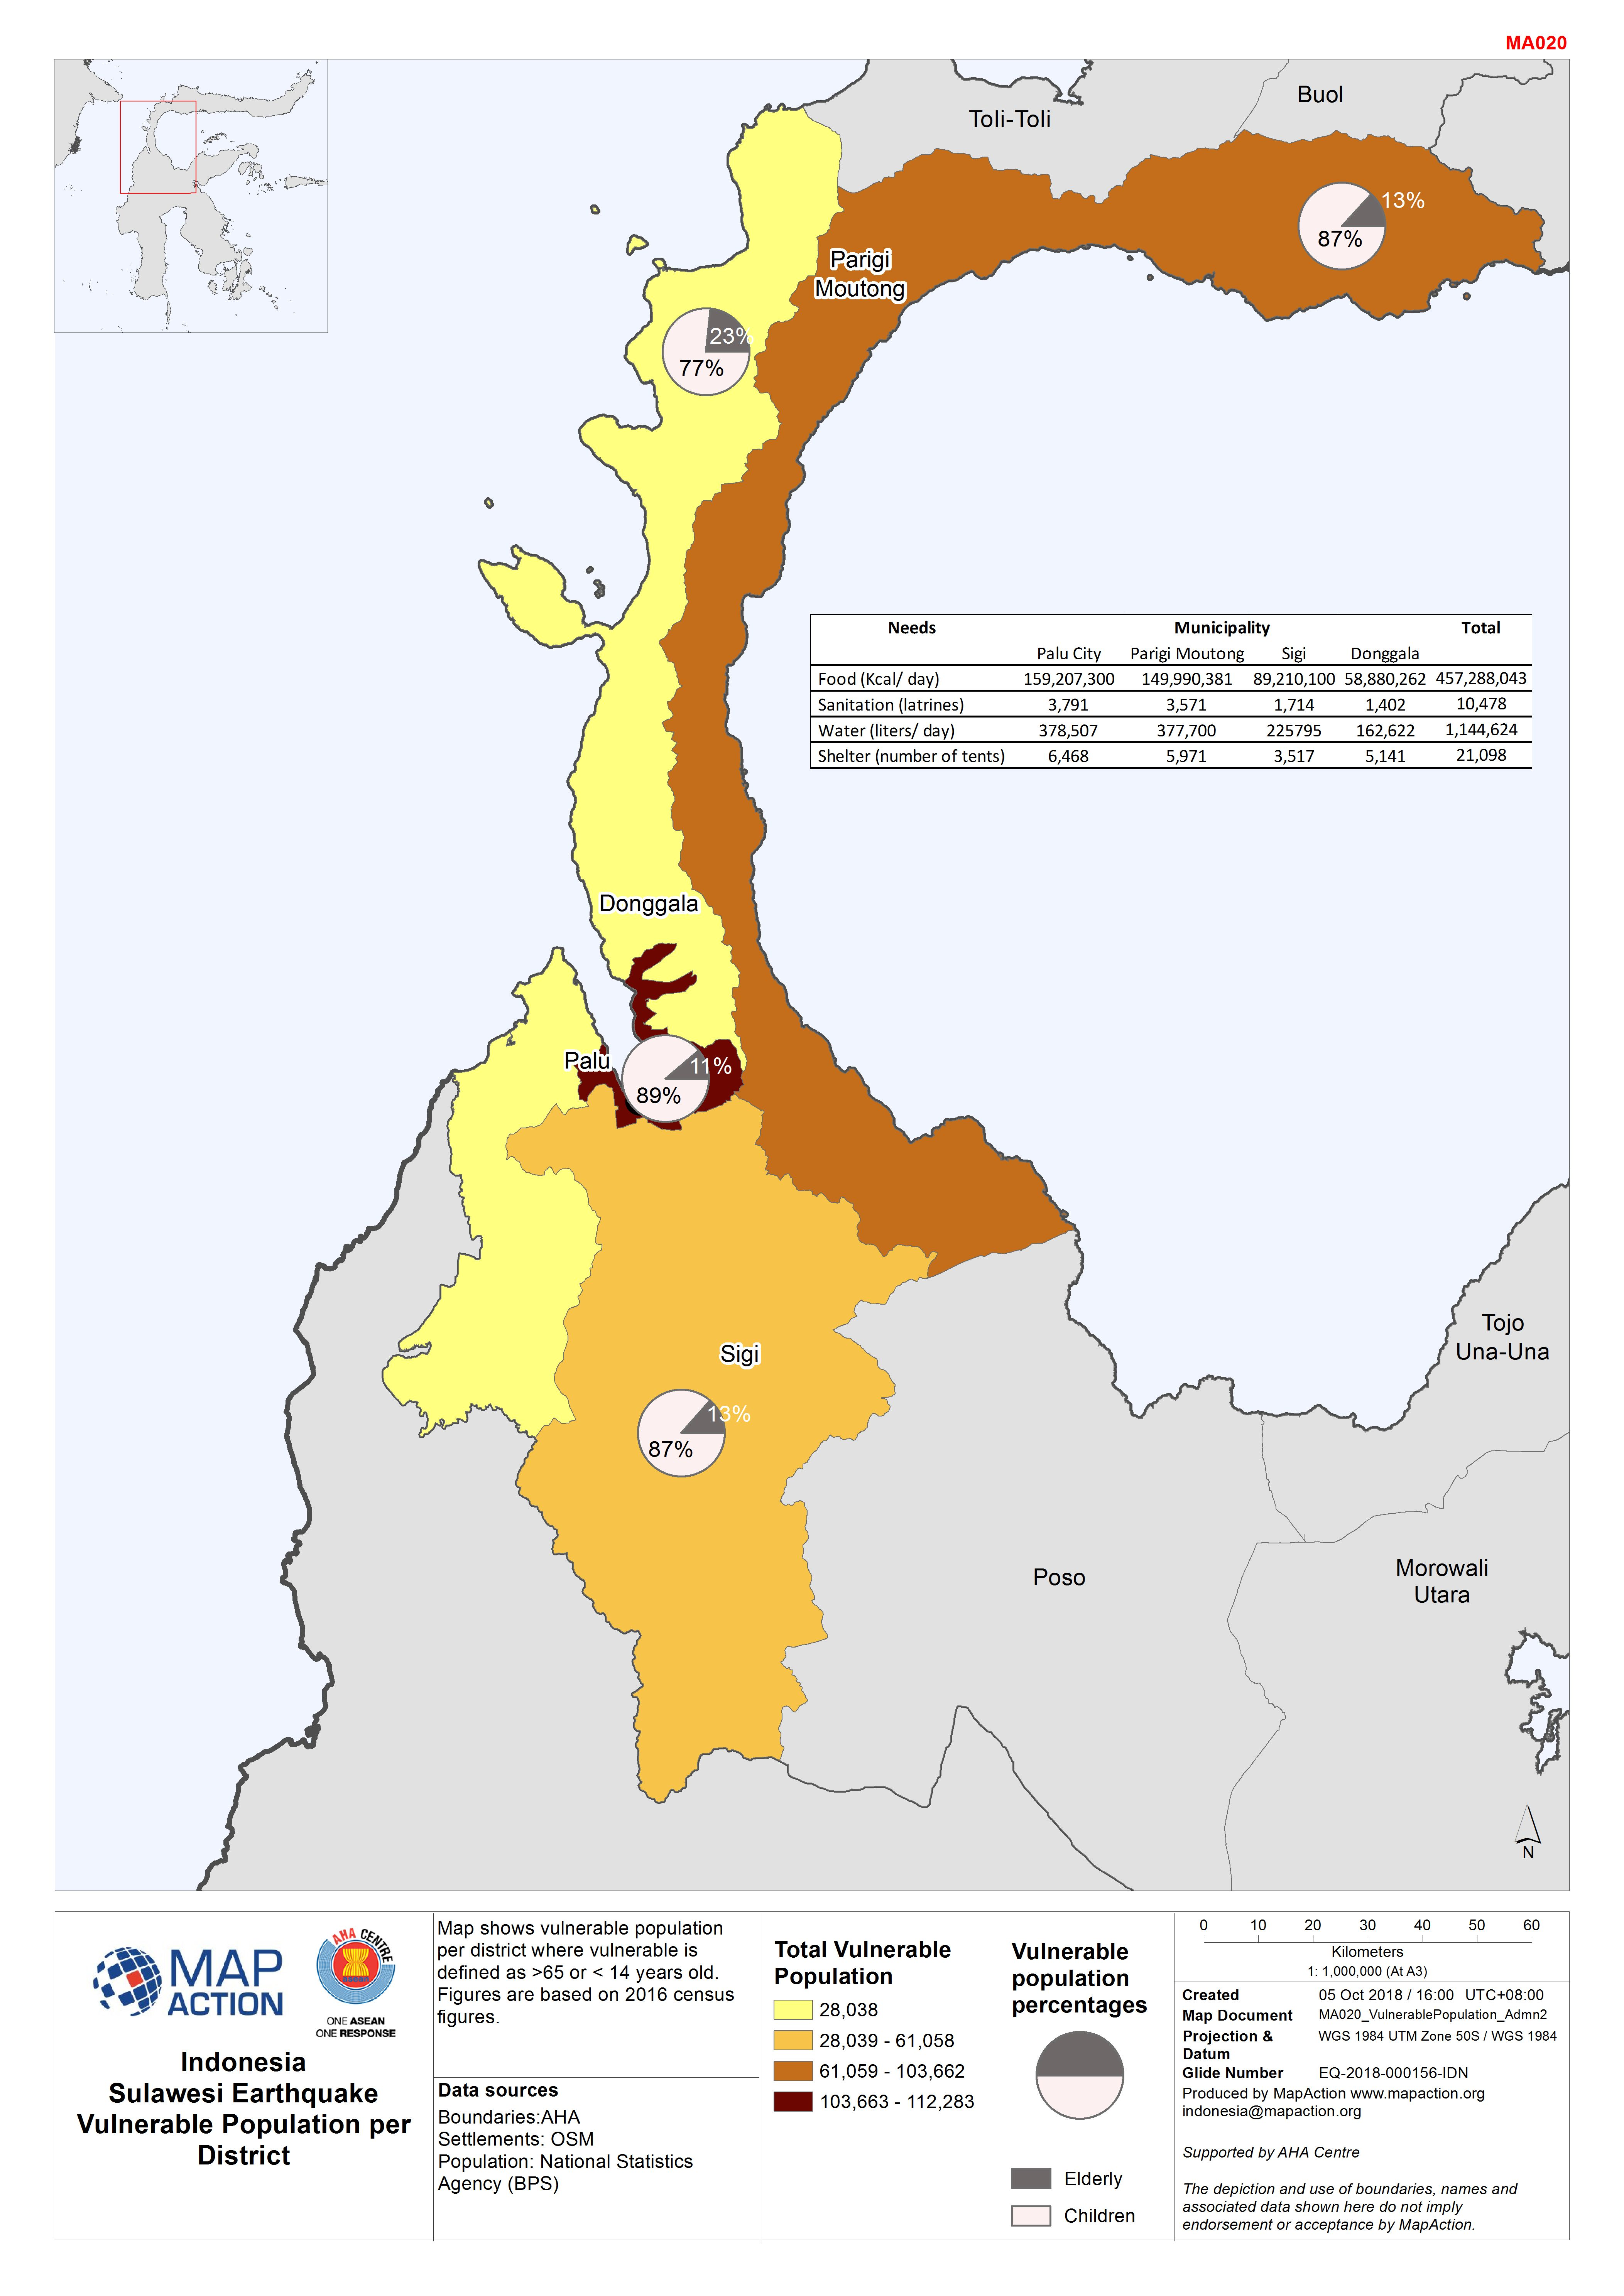 Indonesia Sulawesi Earthquake Vulnerable Population per District